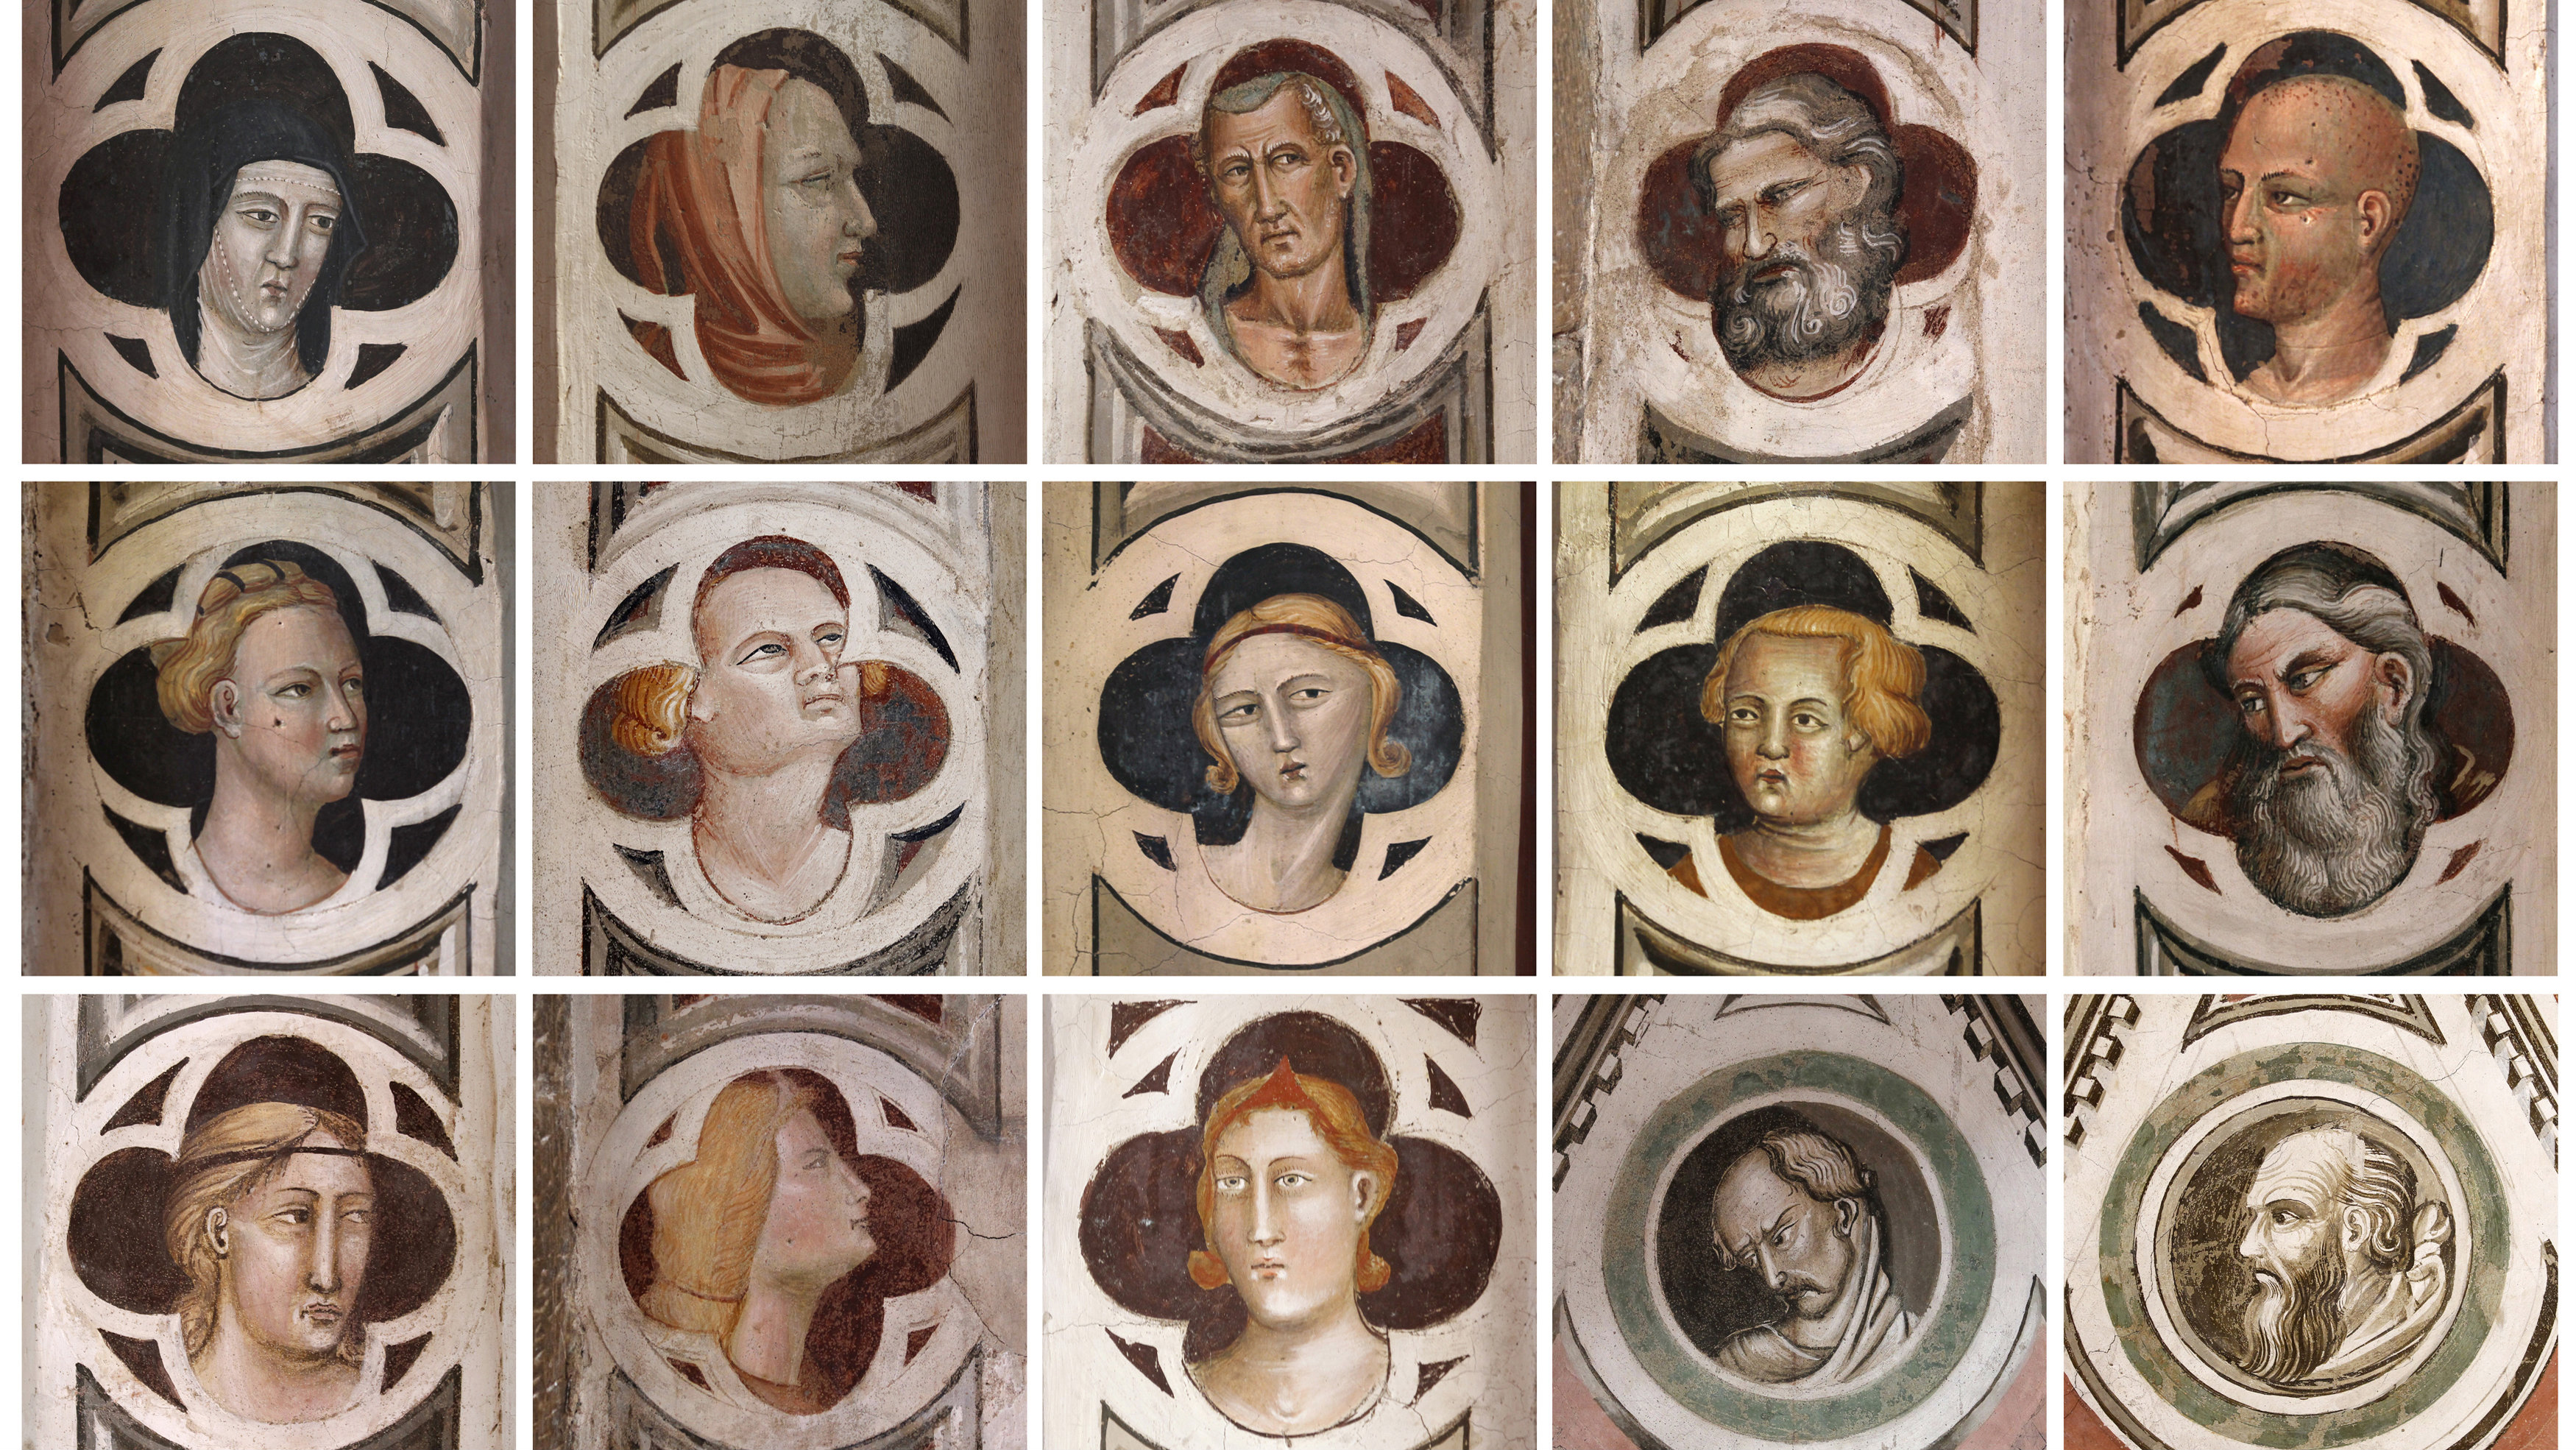 Combination picture of tiny faces that can be found on the 600-year-old Capella Maggiore frescoes at Florence's Santa Croce Basilica April 7, 2011. The tiny faces are not visible from the ground but after a five-year restoration, visitors will be able to climb the scaffolding to view the frescoes close up, instead of from 30 metres below at ground level. Picture taken April 7, 2011.